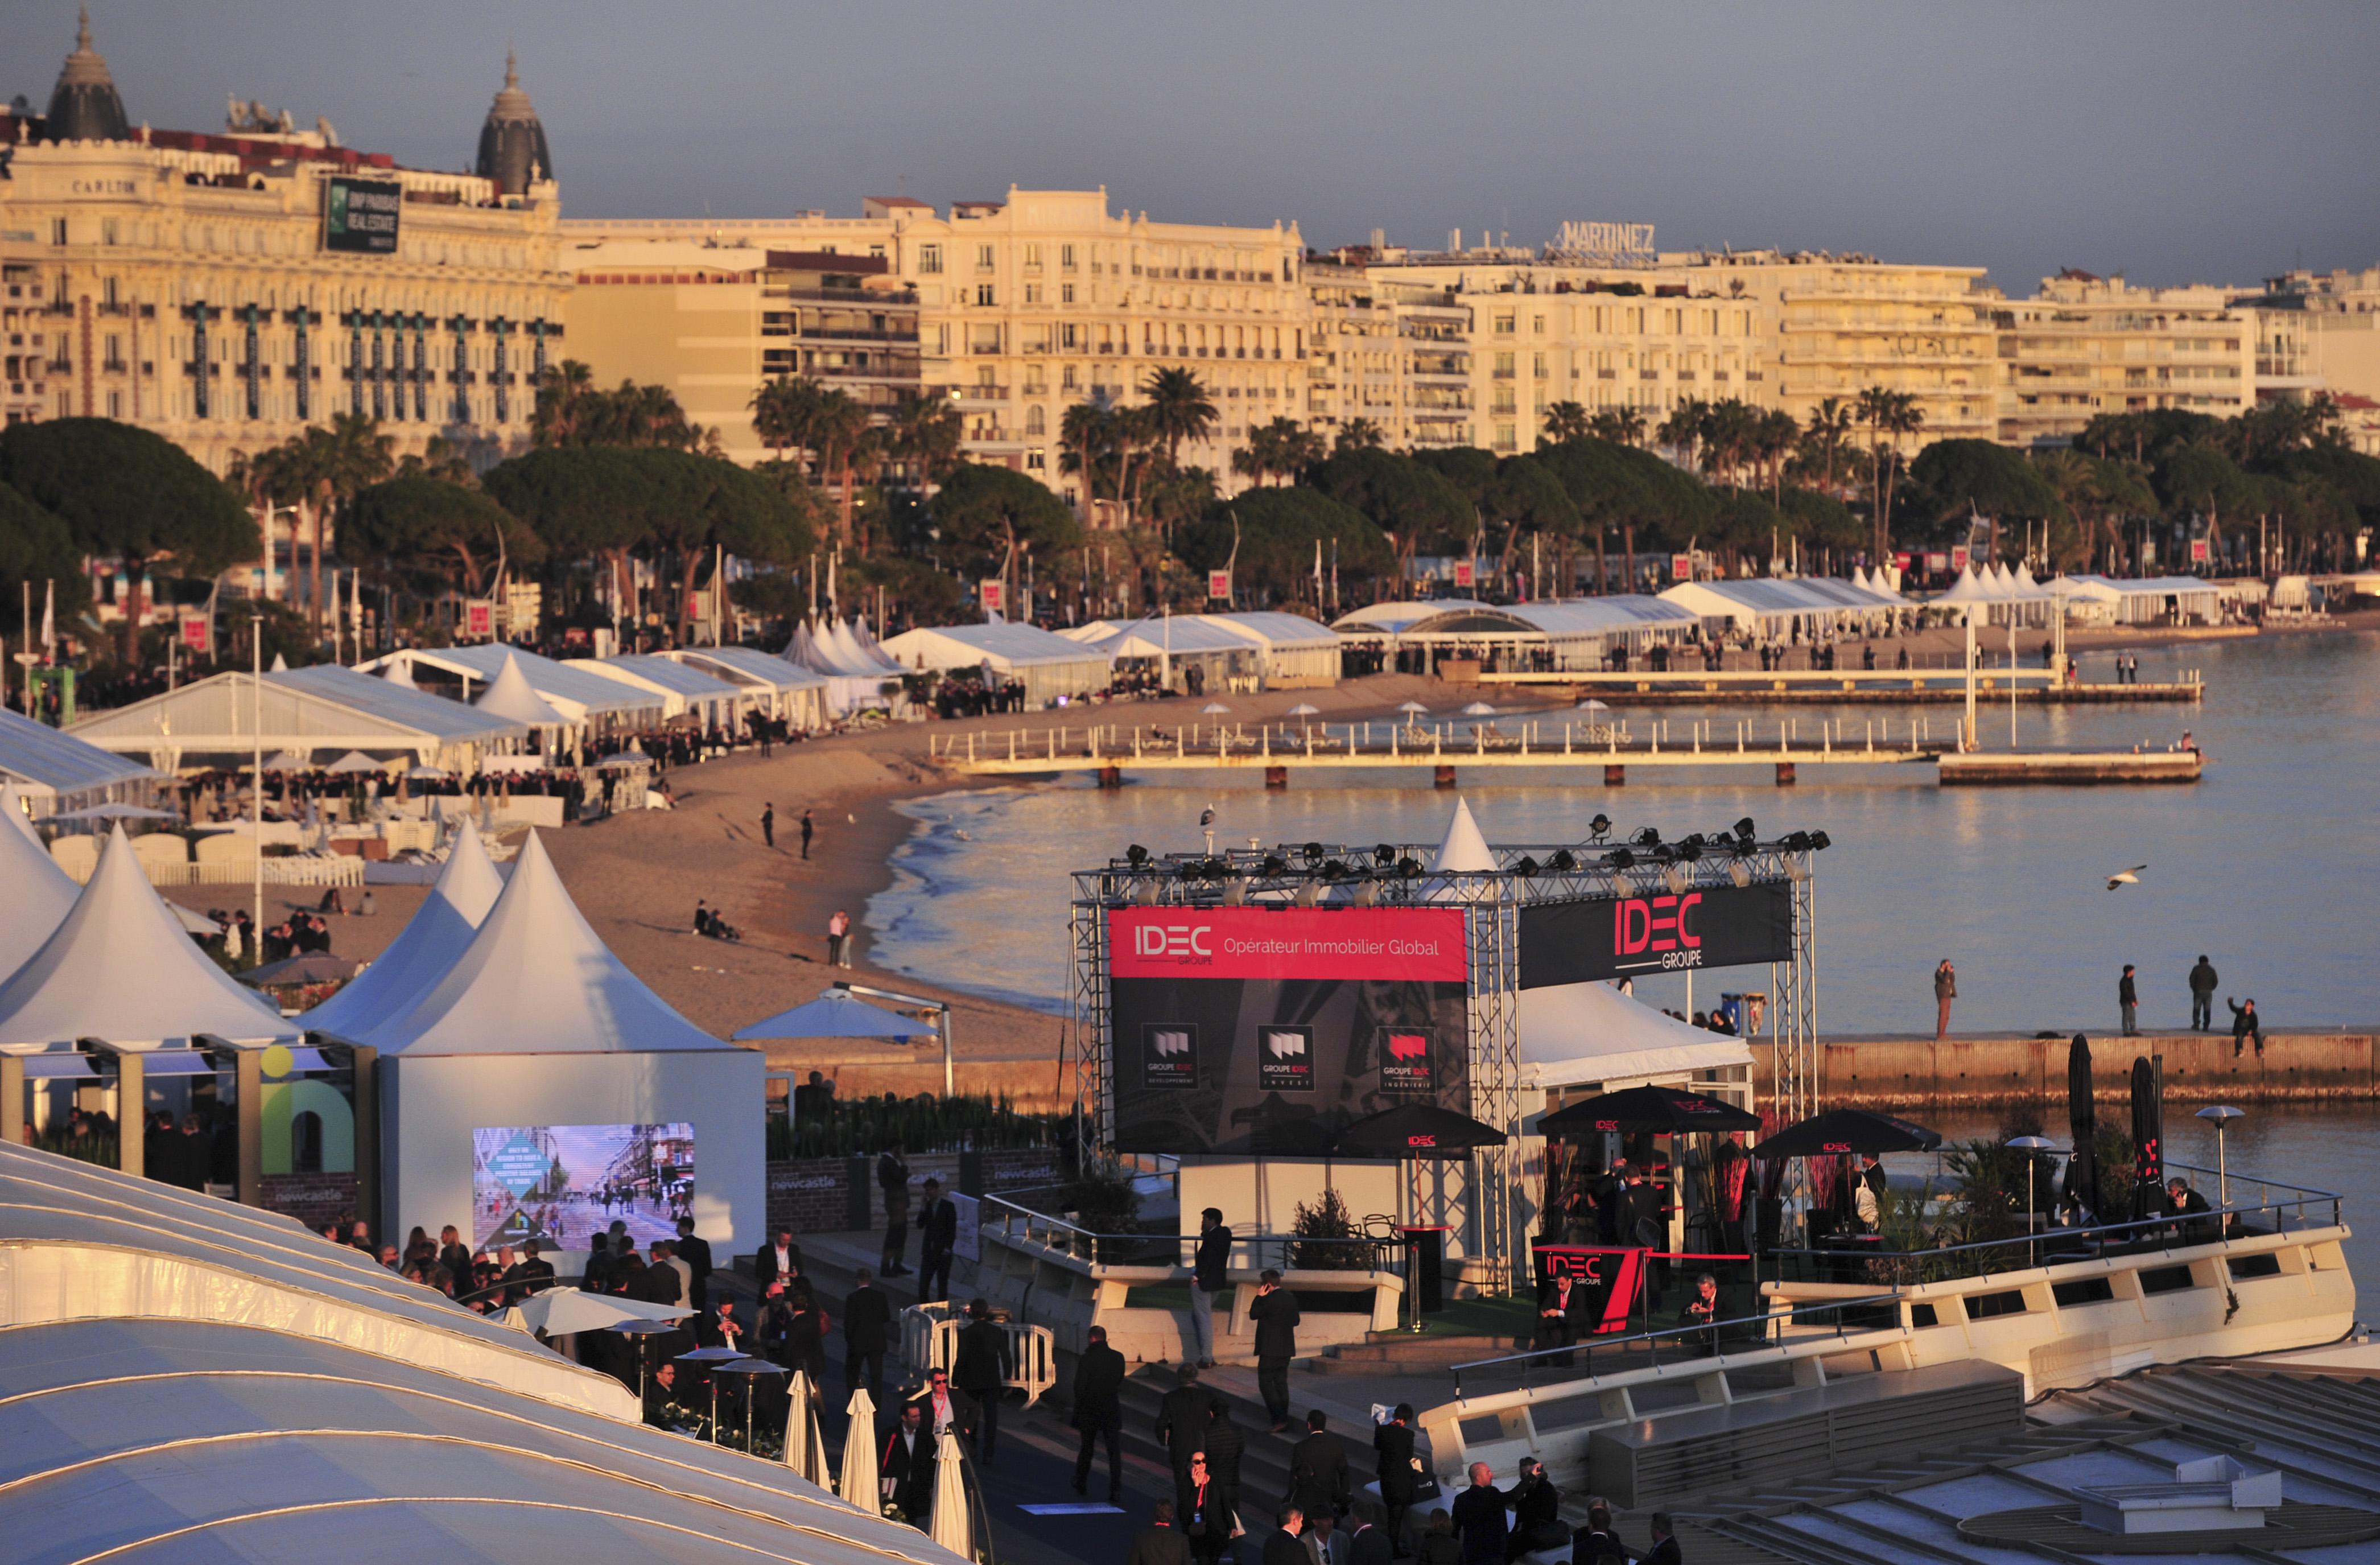 Our summary on the Mipim experience Cannes, 13-16 March 2018